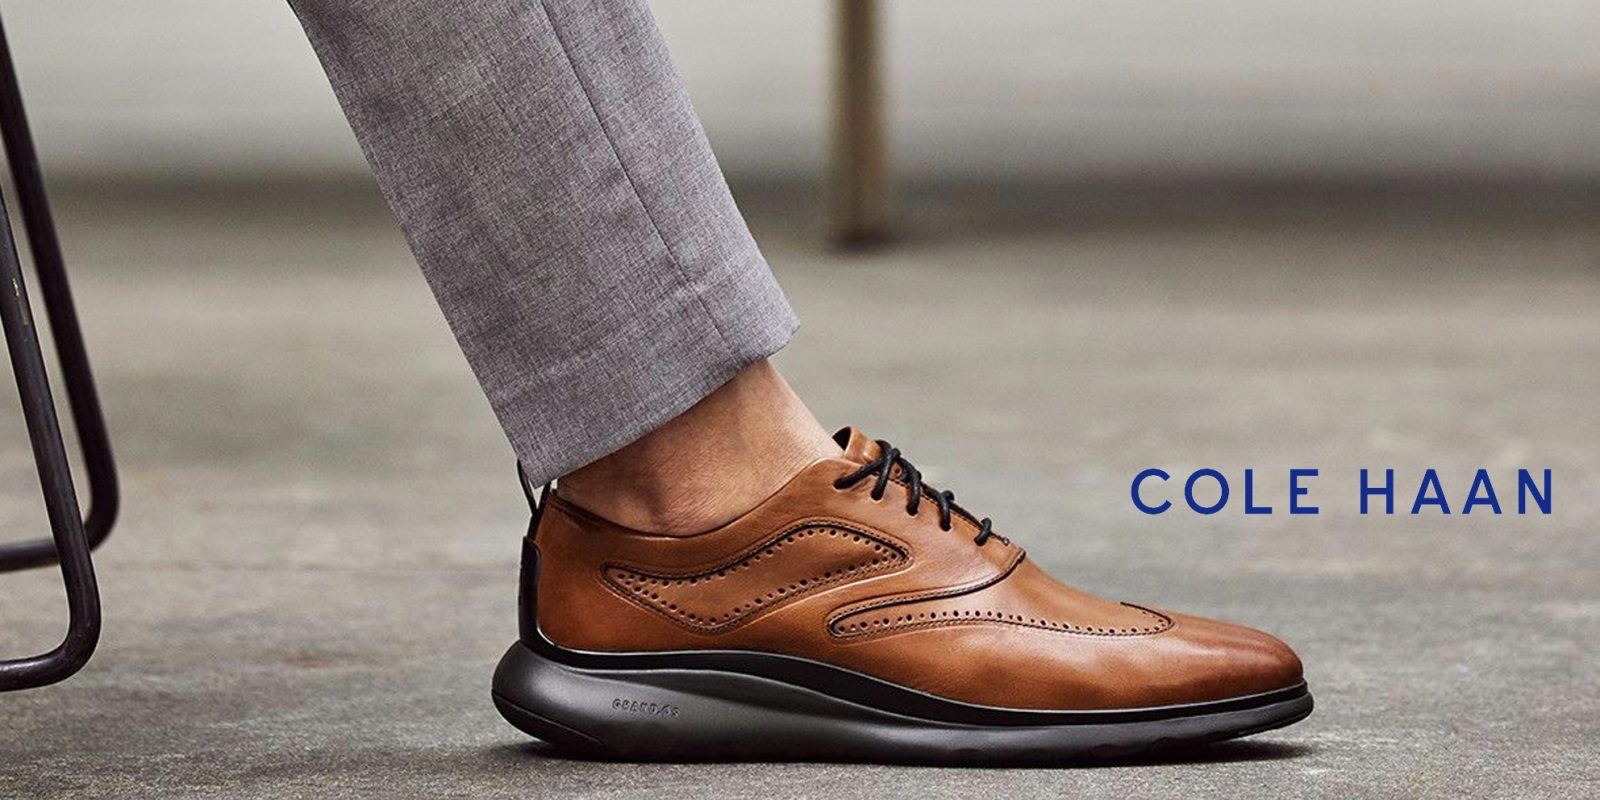 aec7e66df0 Cole Haan's Memorial Day Event offers an extra 40% off all sale items +  free shipping